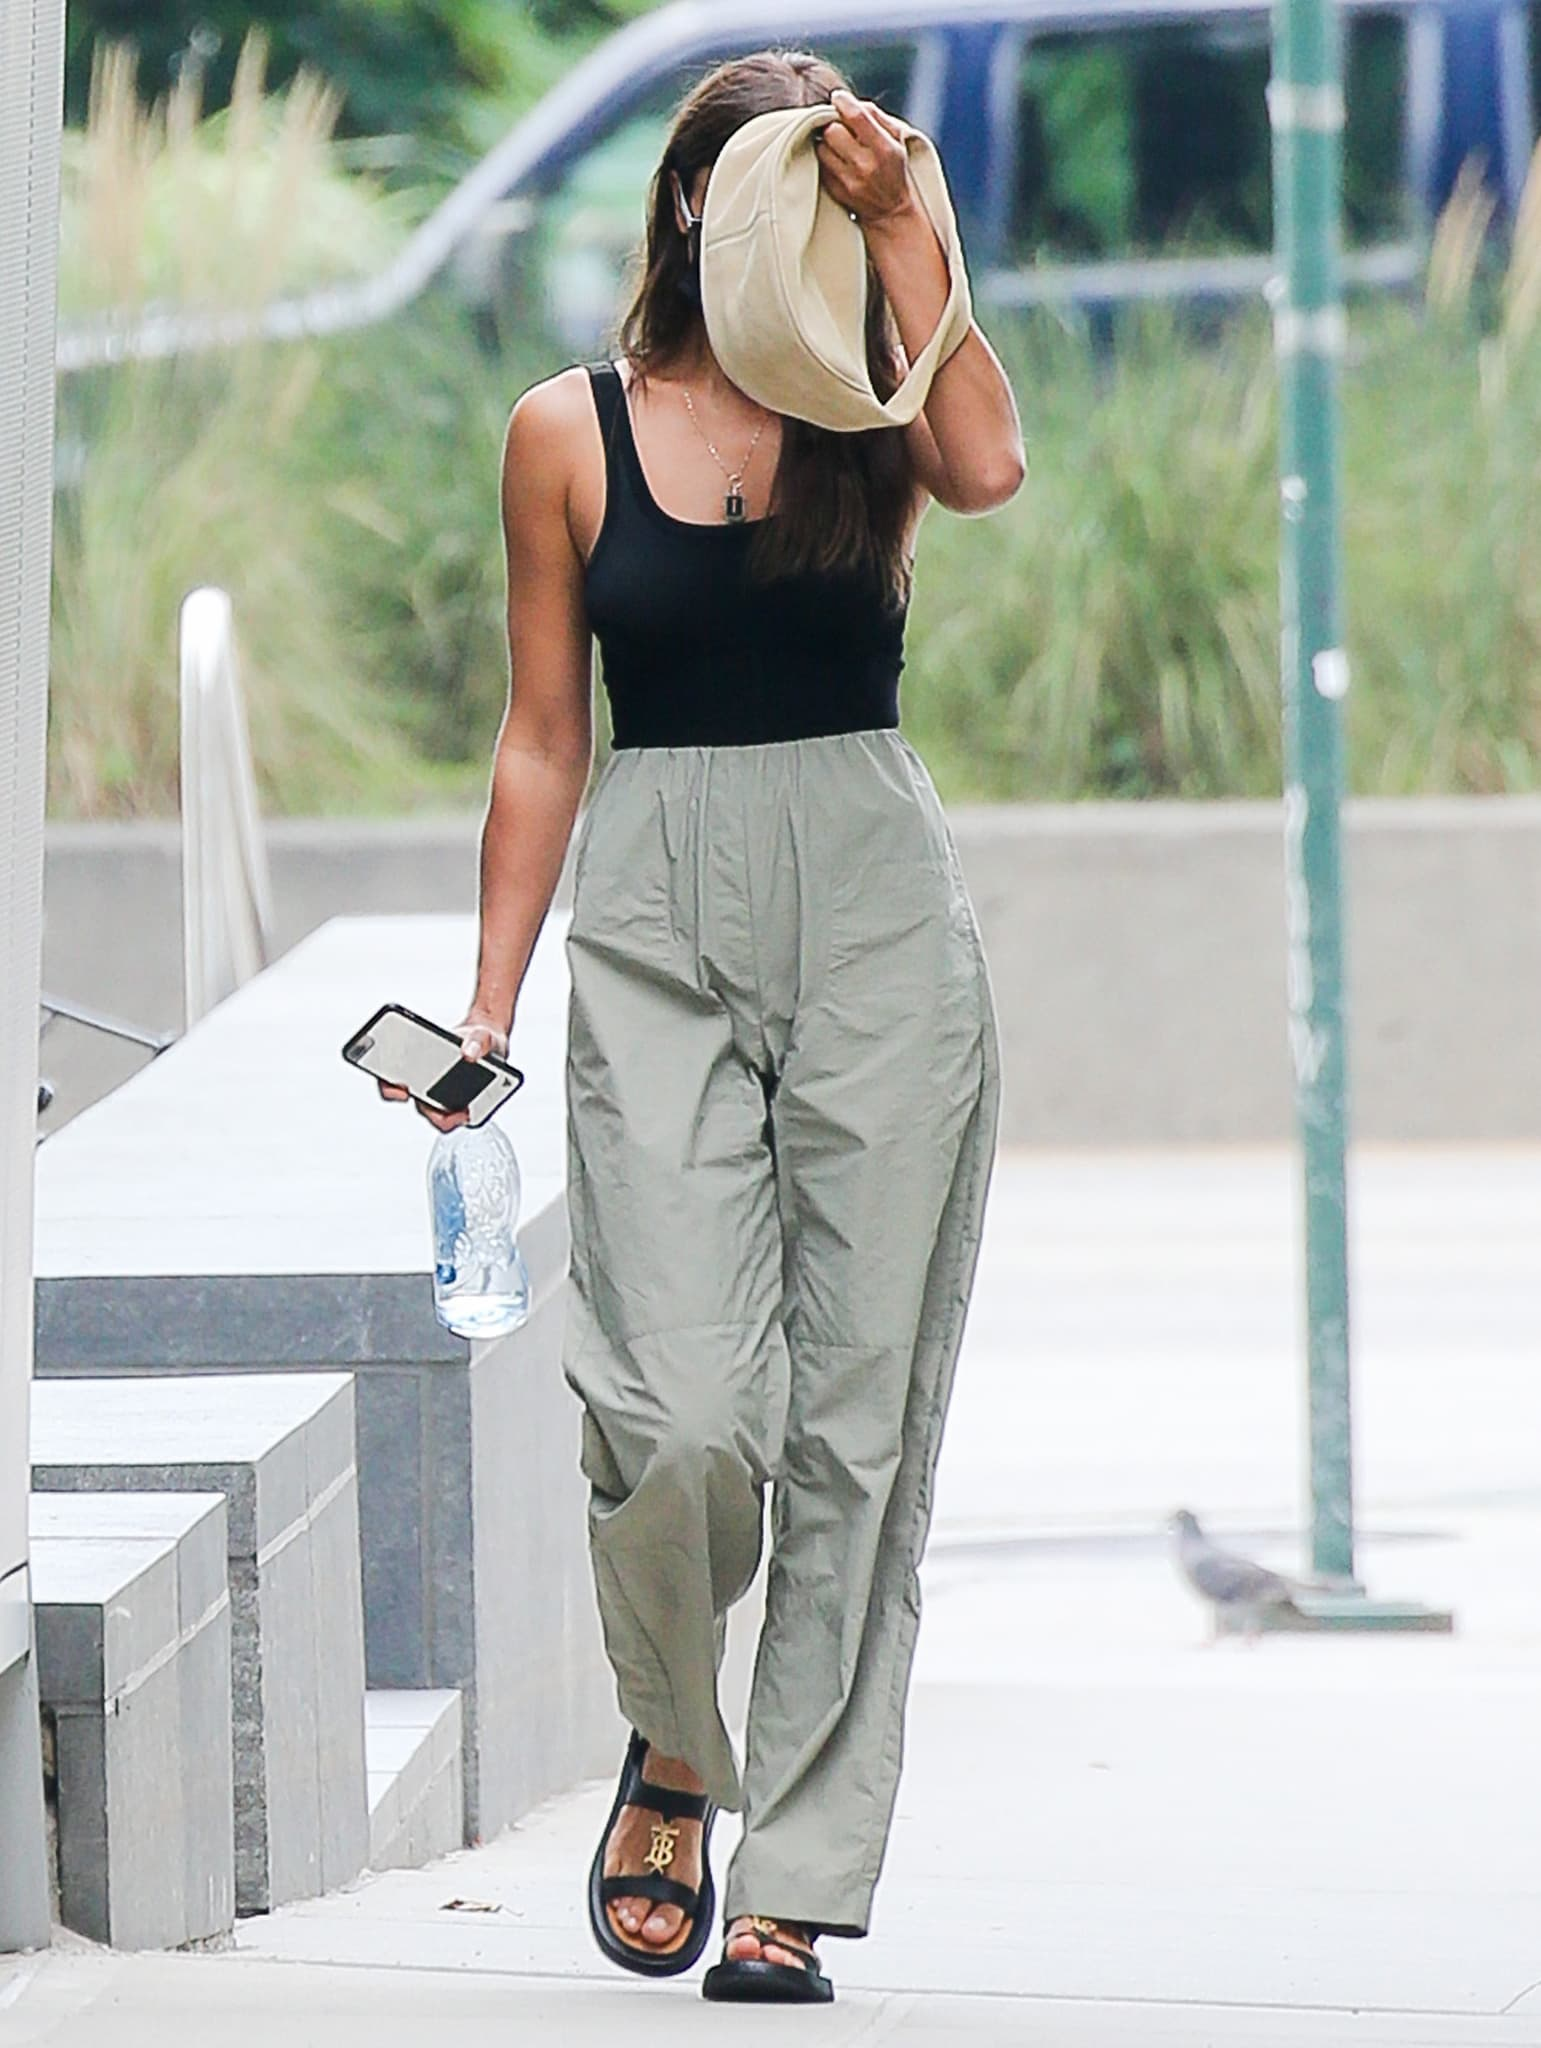 Irina Shayk sneaking out of her ex Vito Schnabel's house in New York City on August 10, 2021